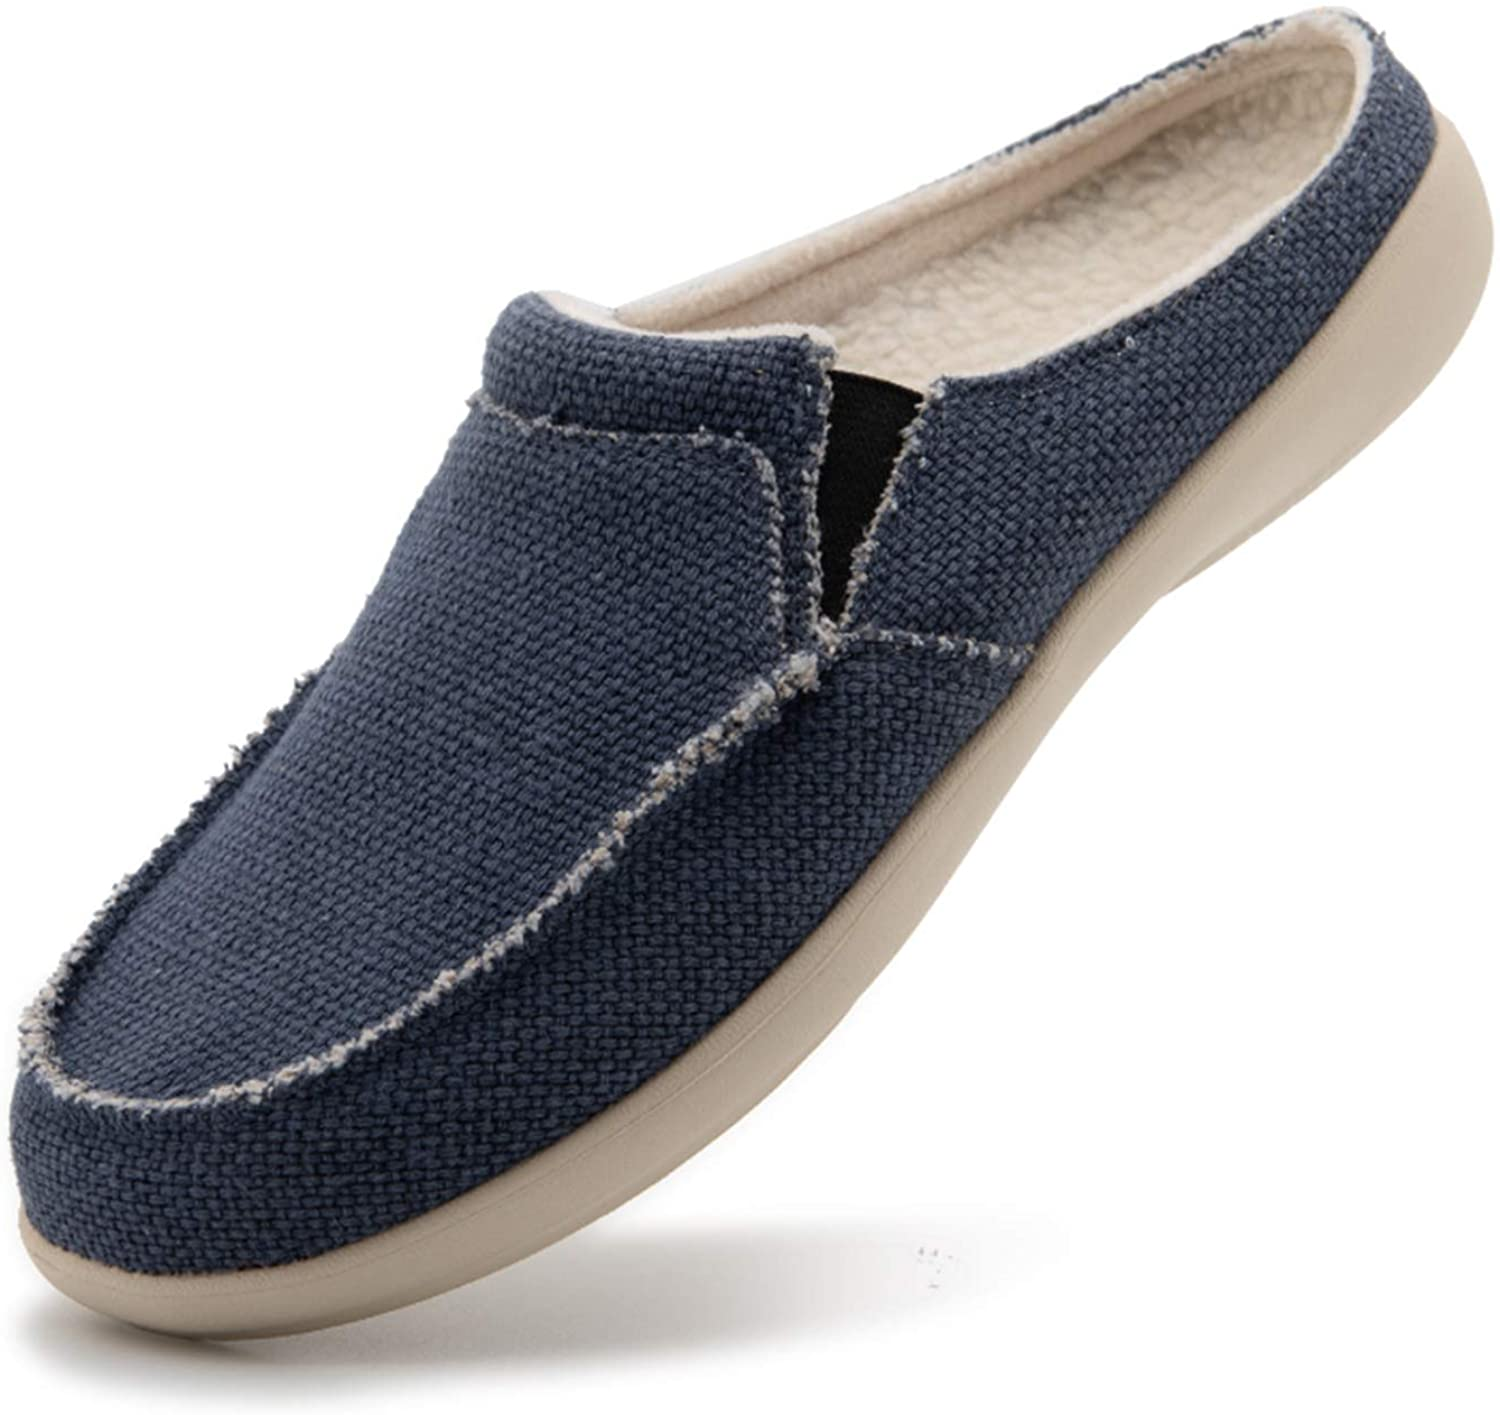 Mens Comfy Warm Canvas Orthopedic Slippers with Arch Support,Velvet Lining,Size:7-14